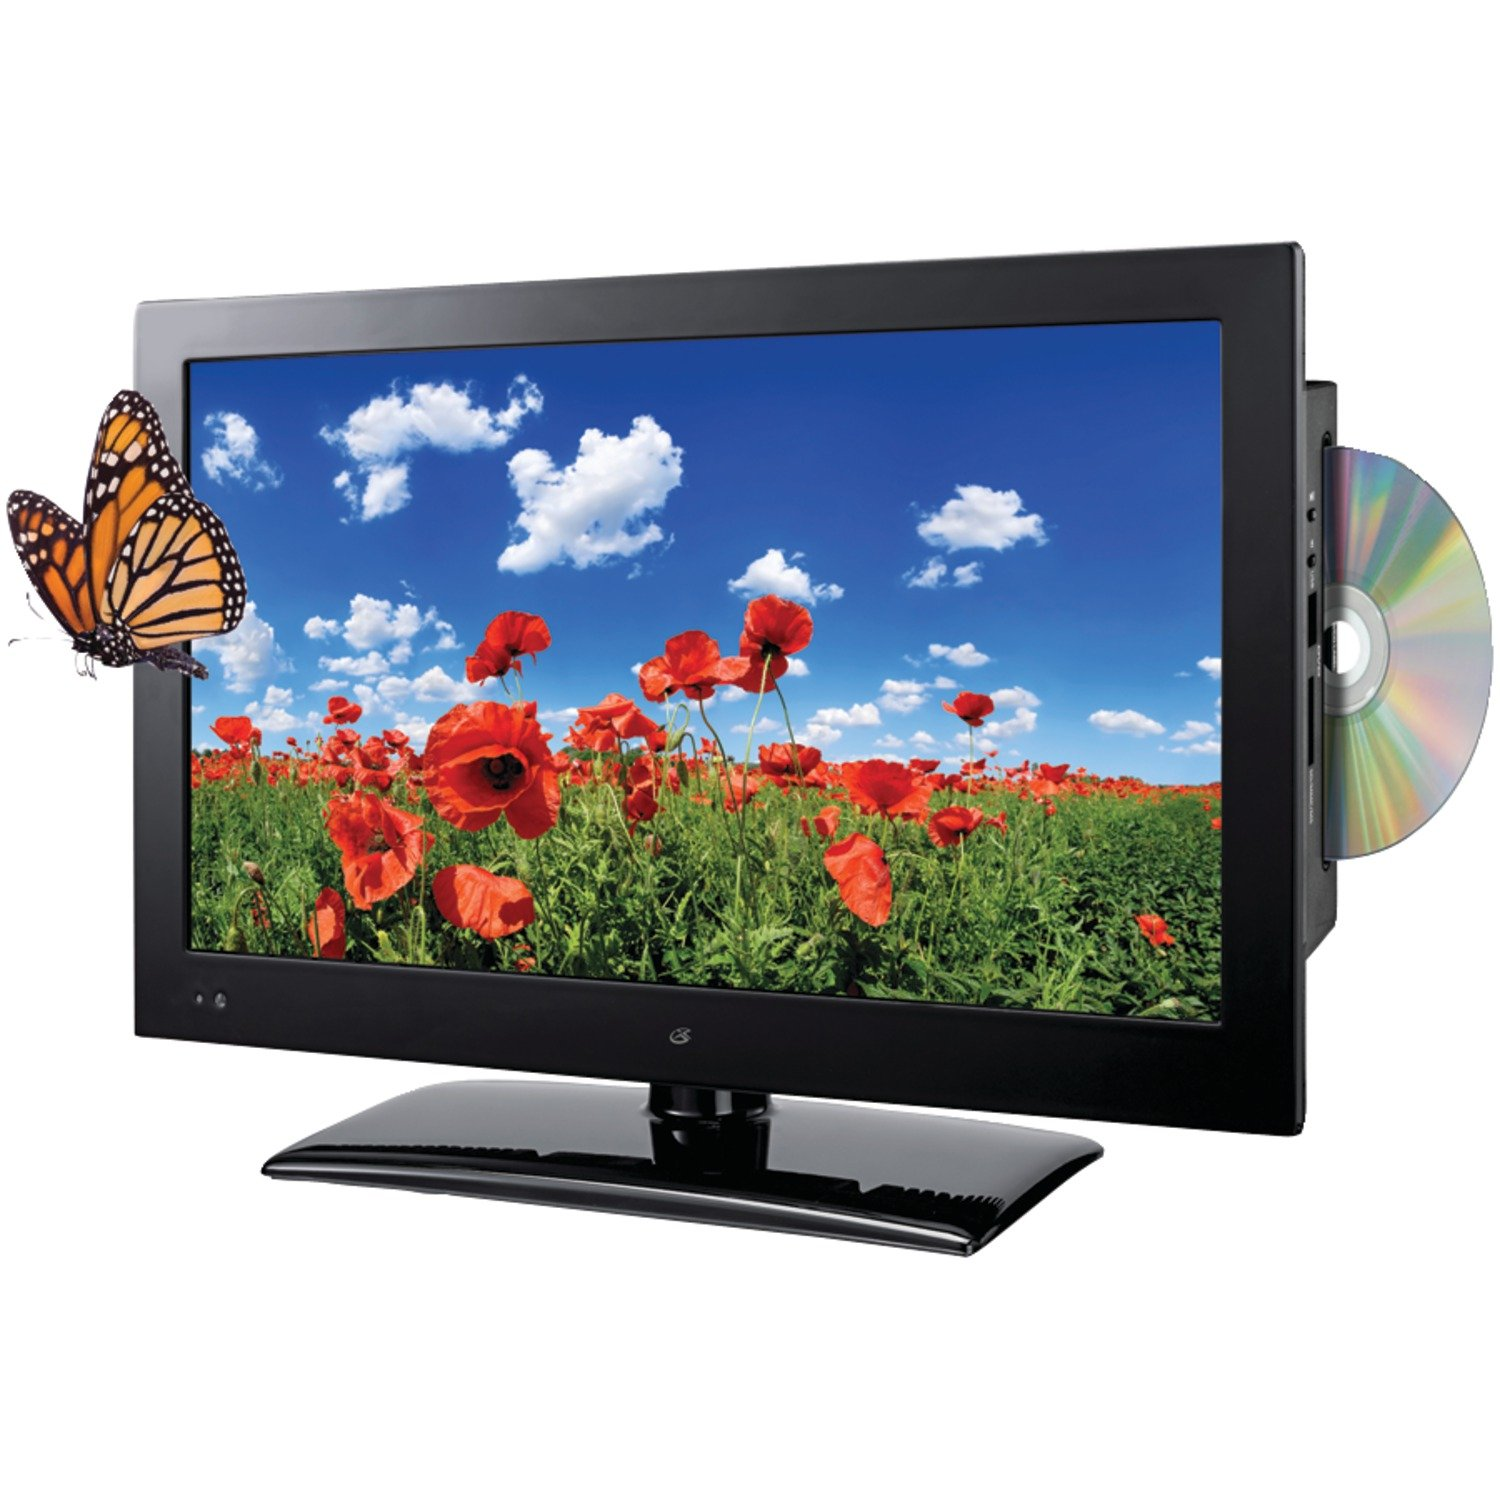 GPX TDE1982B 19IN LED HDTV/DVD Combo (Black) by GPX